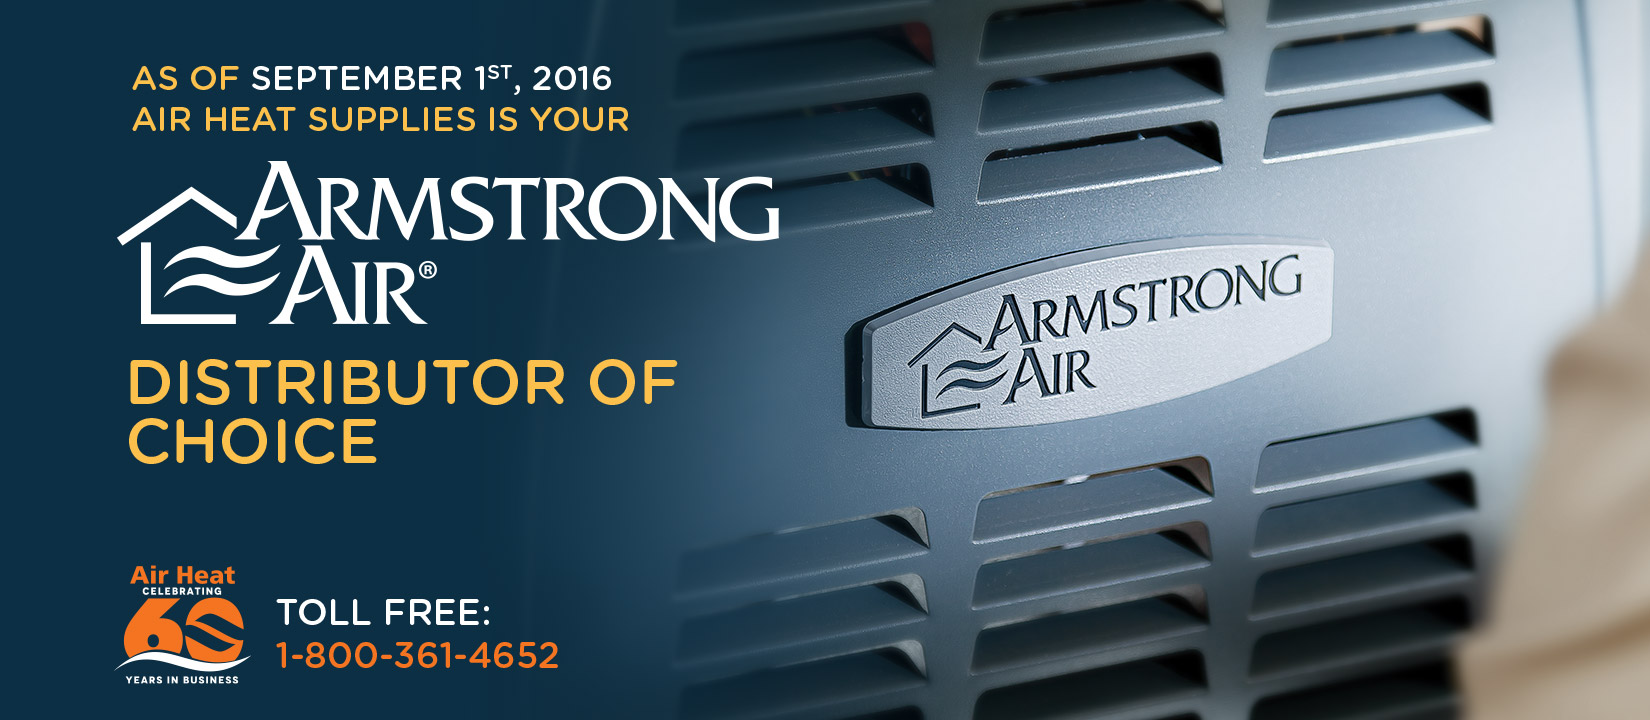 airheat-armstrong-banner-1650x720px-edited-01-02